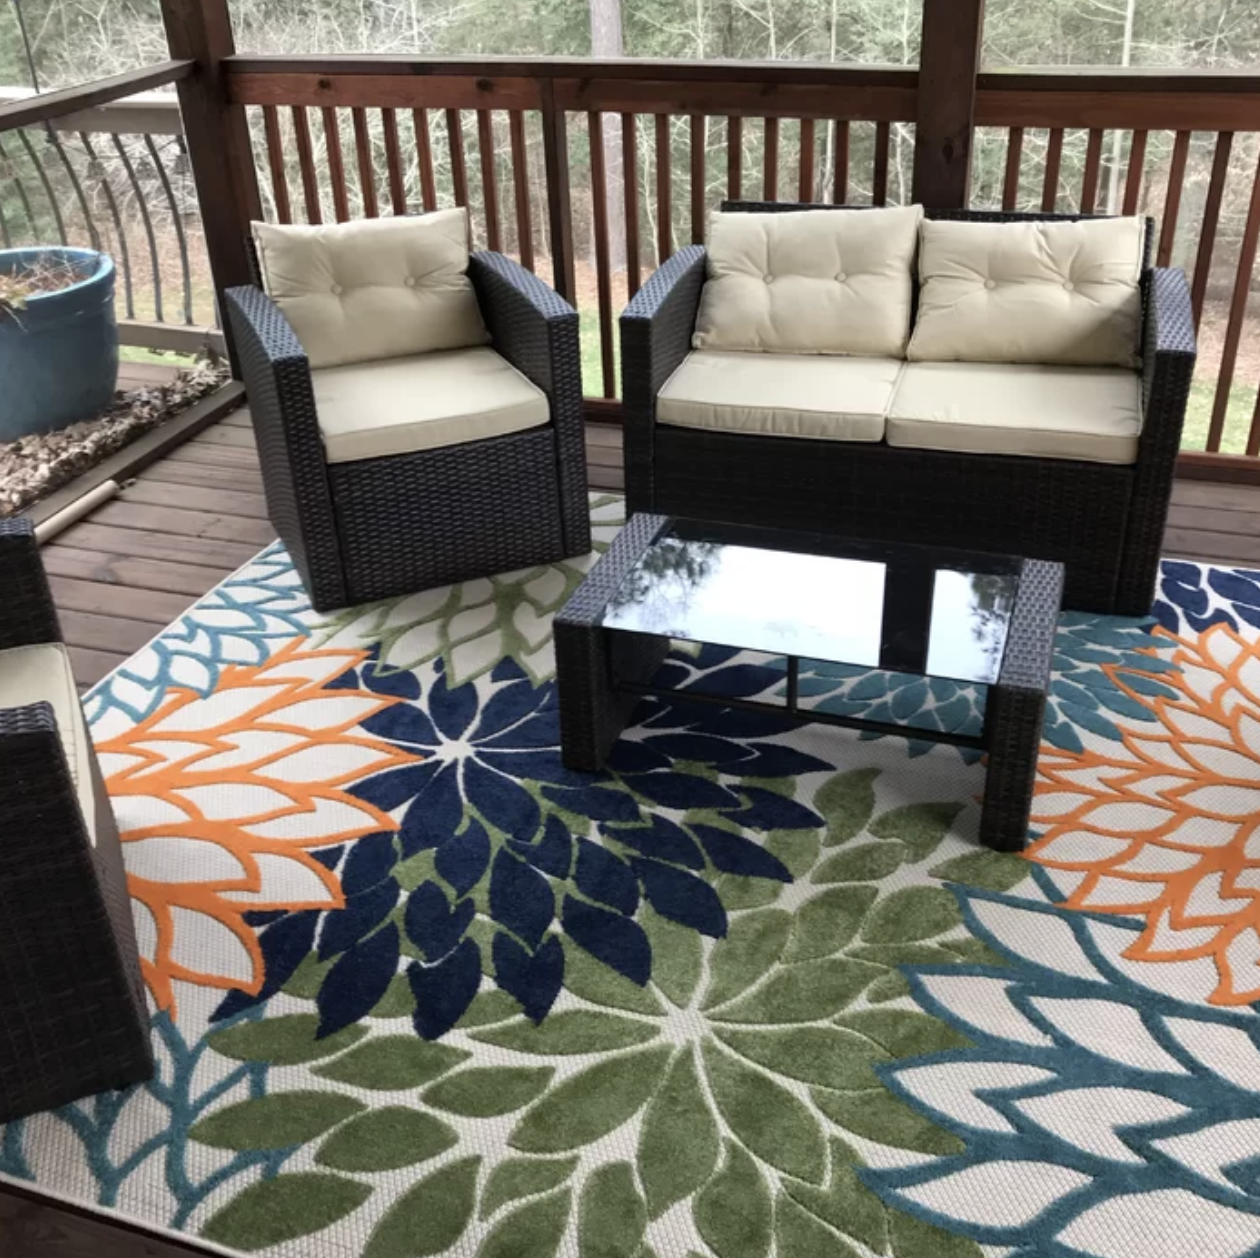 Reviewer's photo of the floral rug on their deck